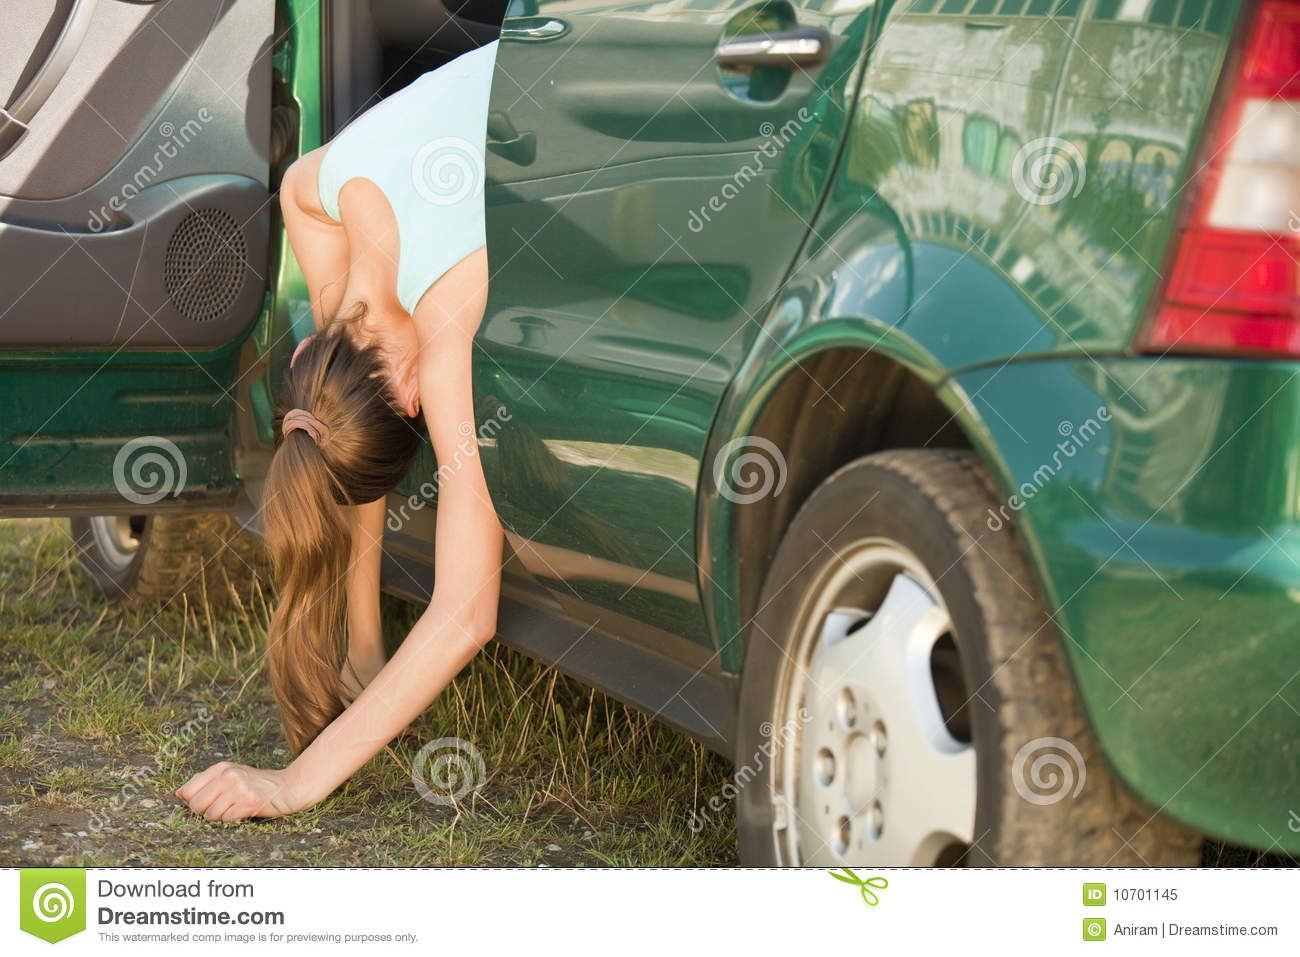 Accident with car stock image. Image of outdoor, injury - 10701145